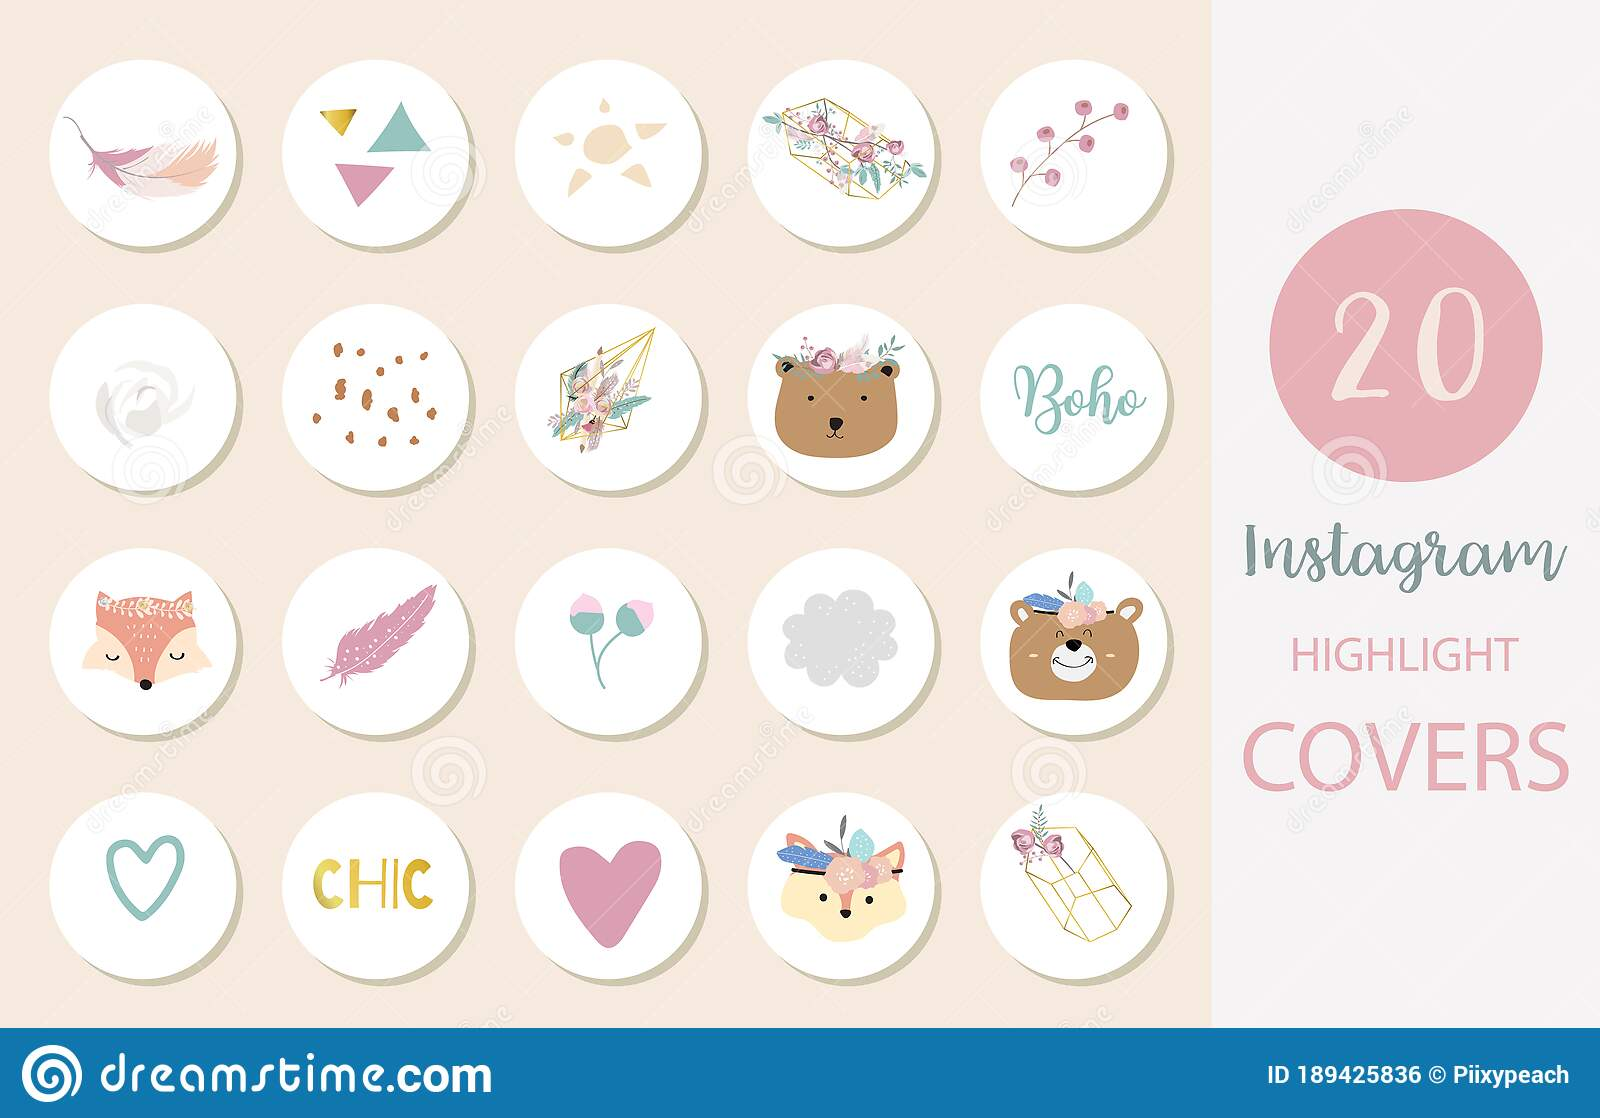 Icon Of Instagram Highlight Cover With Flower Feather Leaf For Social Media Stock Vector Illustration Of Blog Pastel 189425836